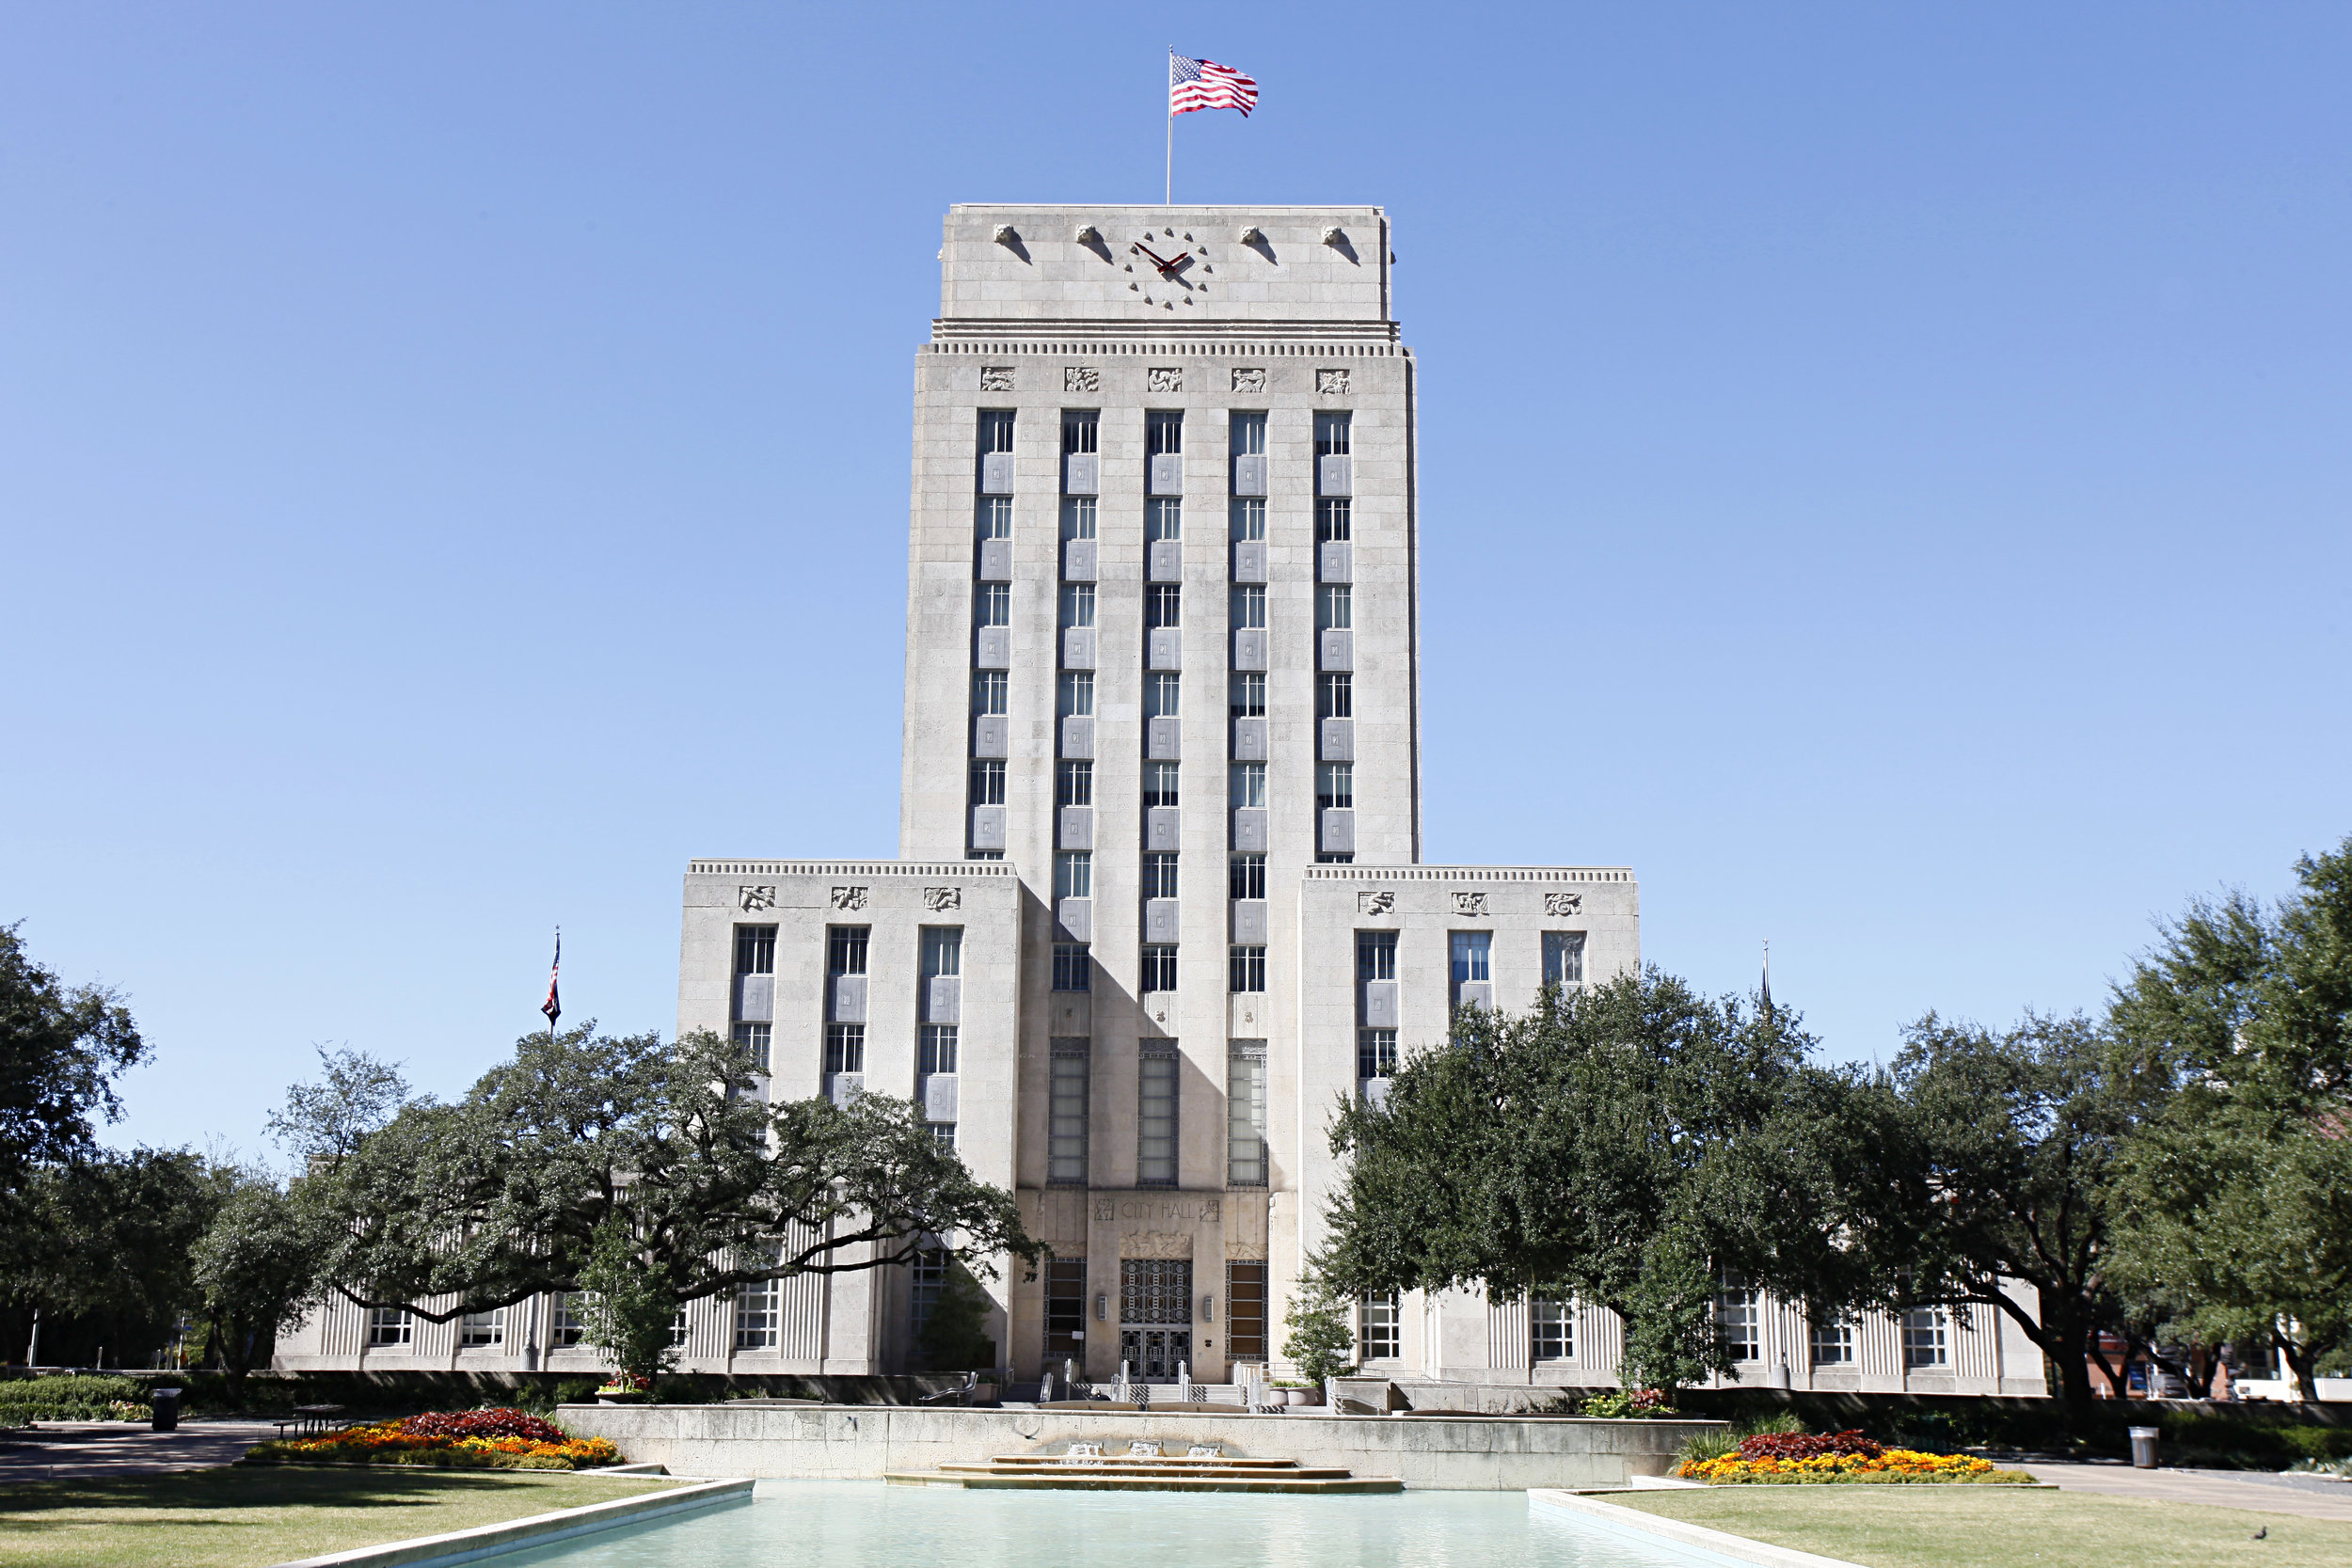 Houston's City hall. photo:  VanHart/shuttersock